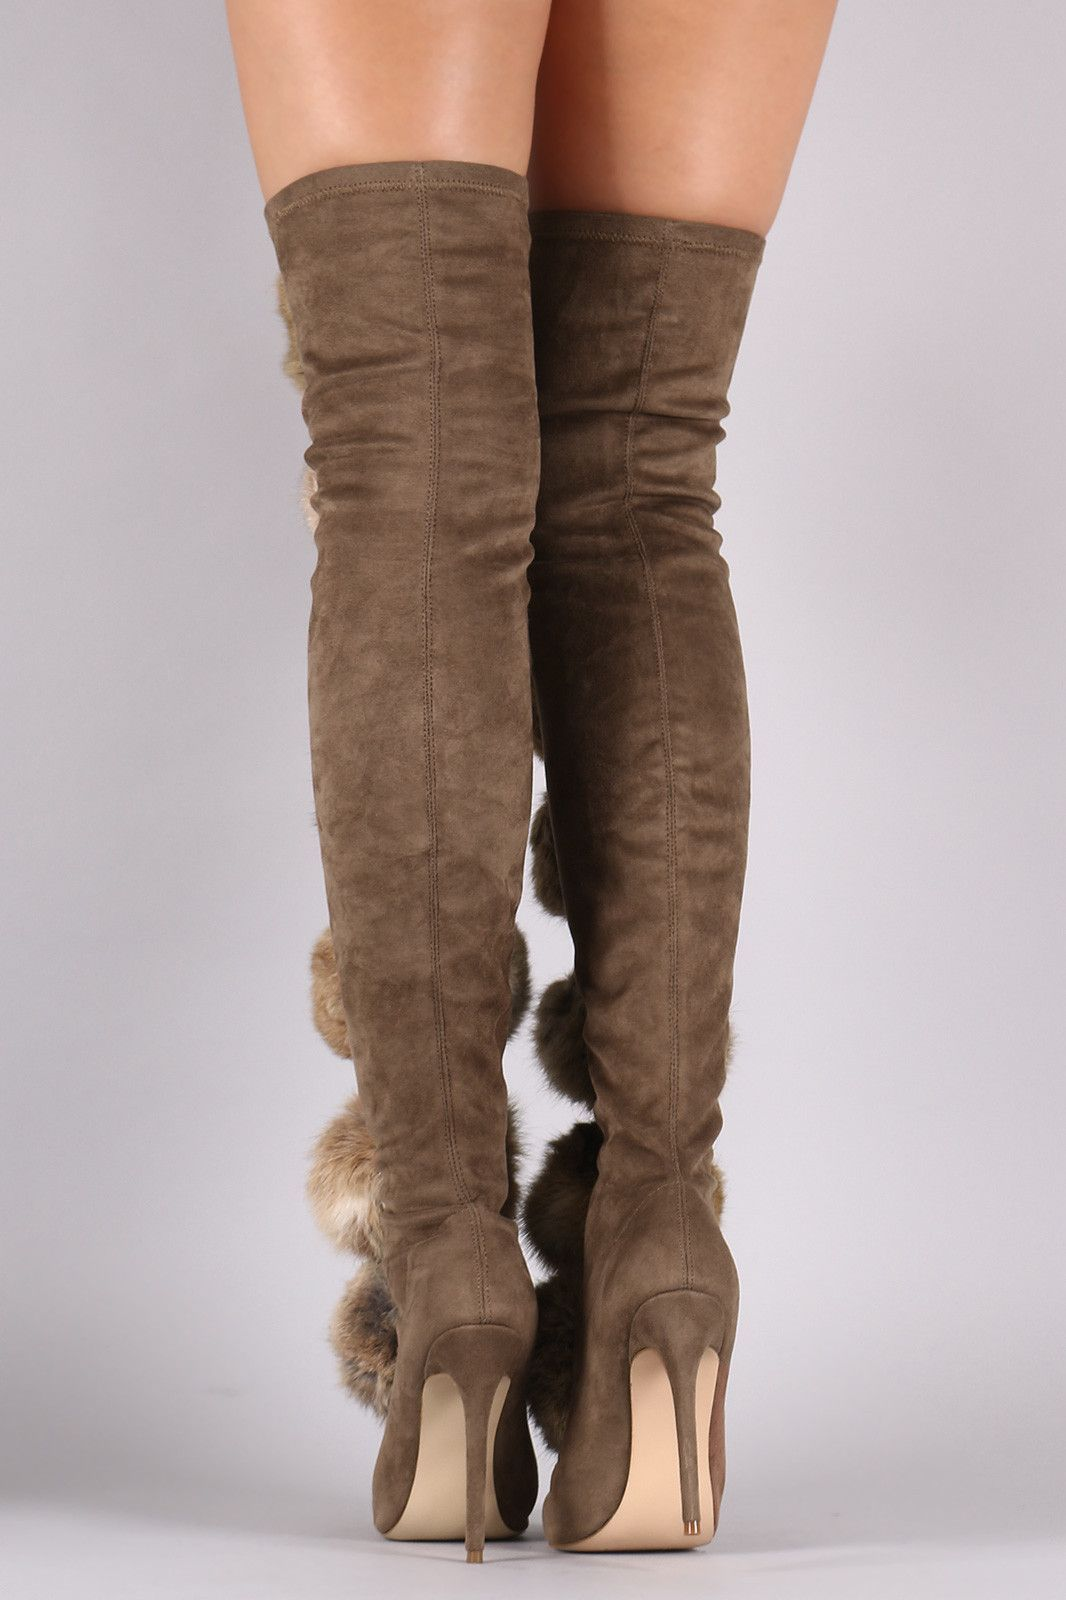 efa55d34d0c Privileged Suede Oversized Pom Pom Fitted Stiletto Over-The-Knee Boots